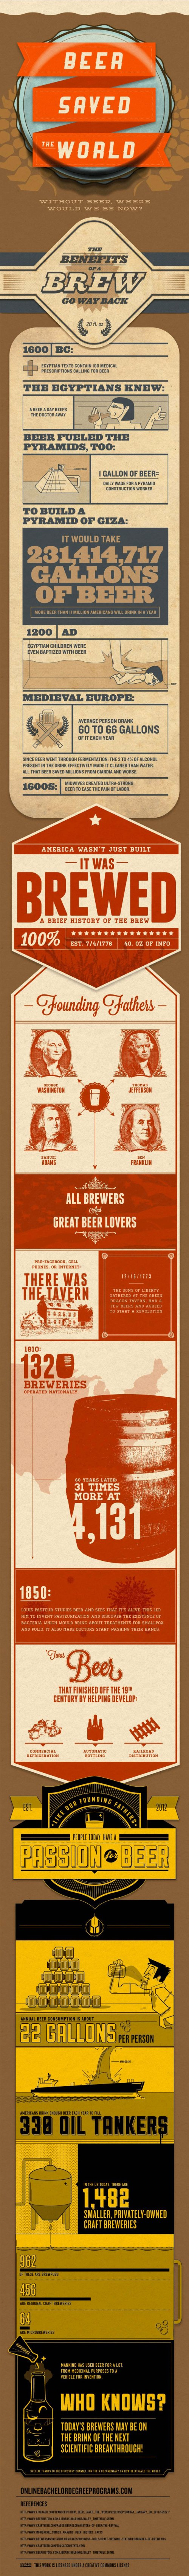 beer saved the world How Beer Saved The World [infographic]